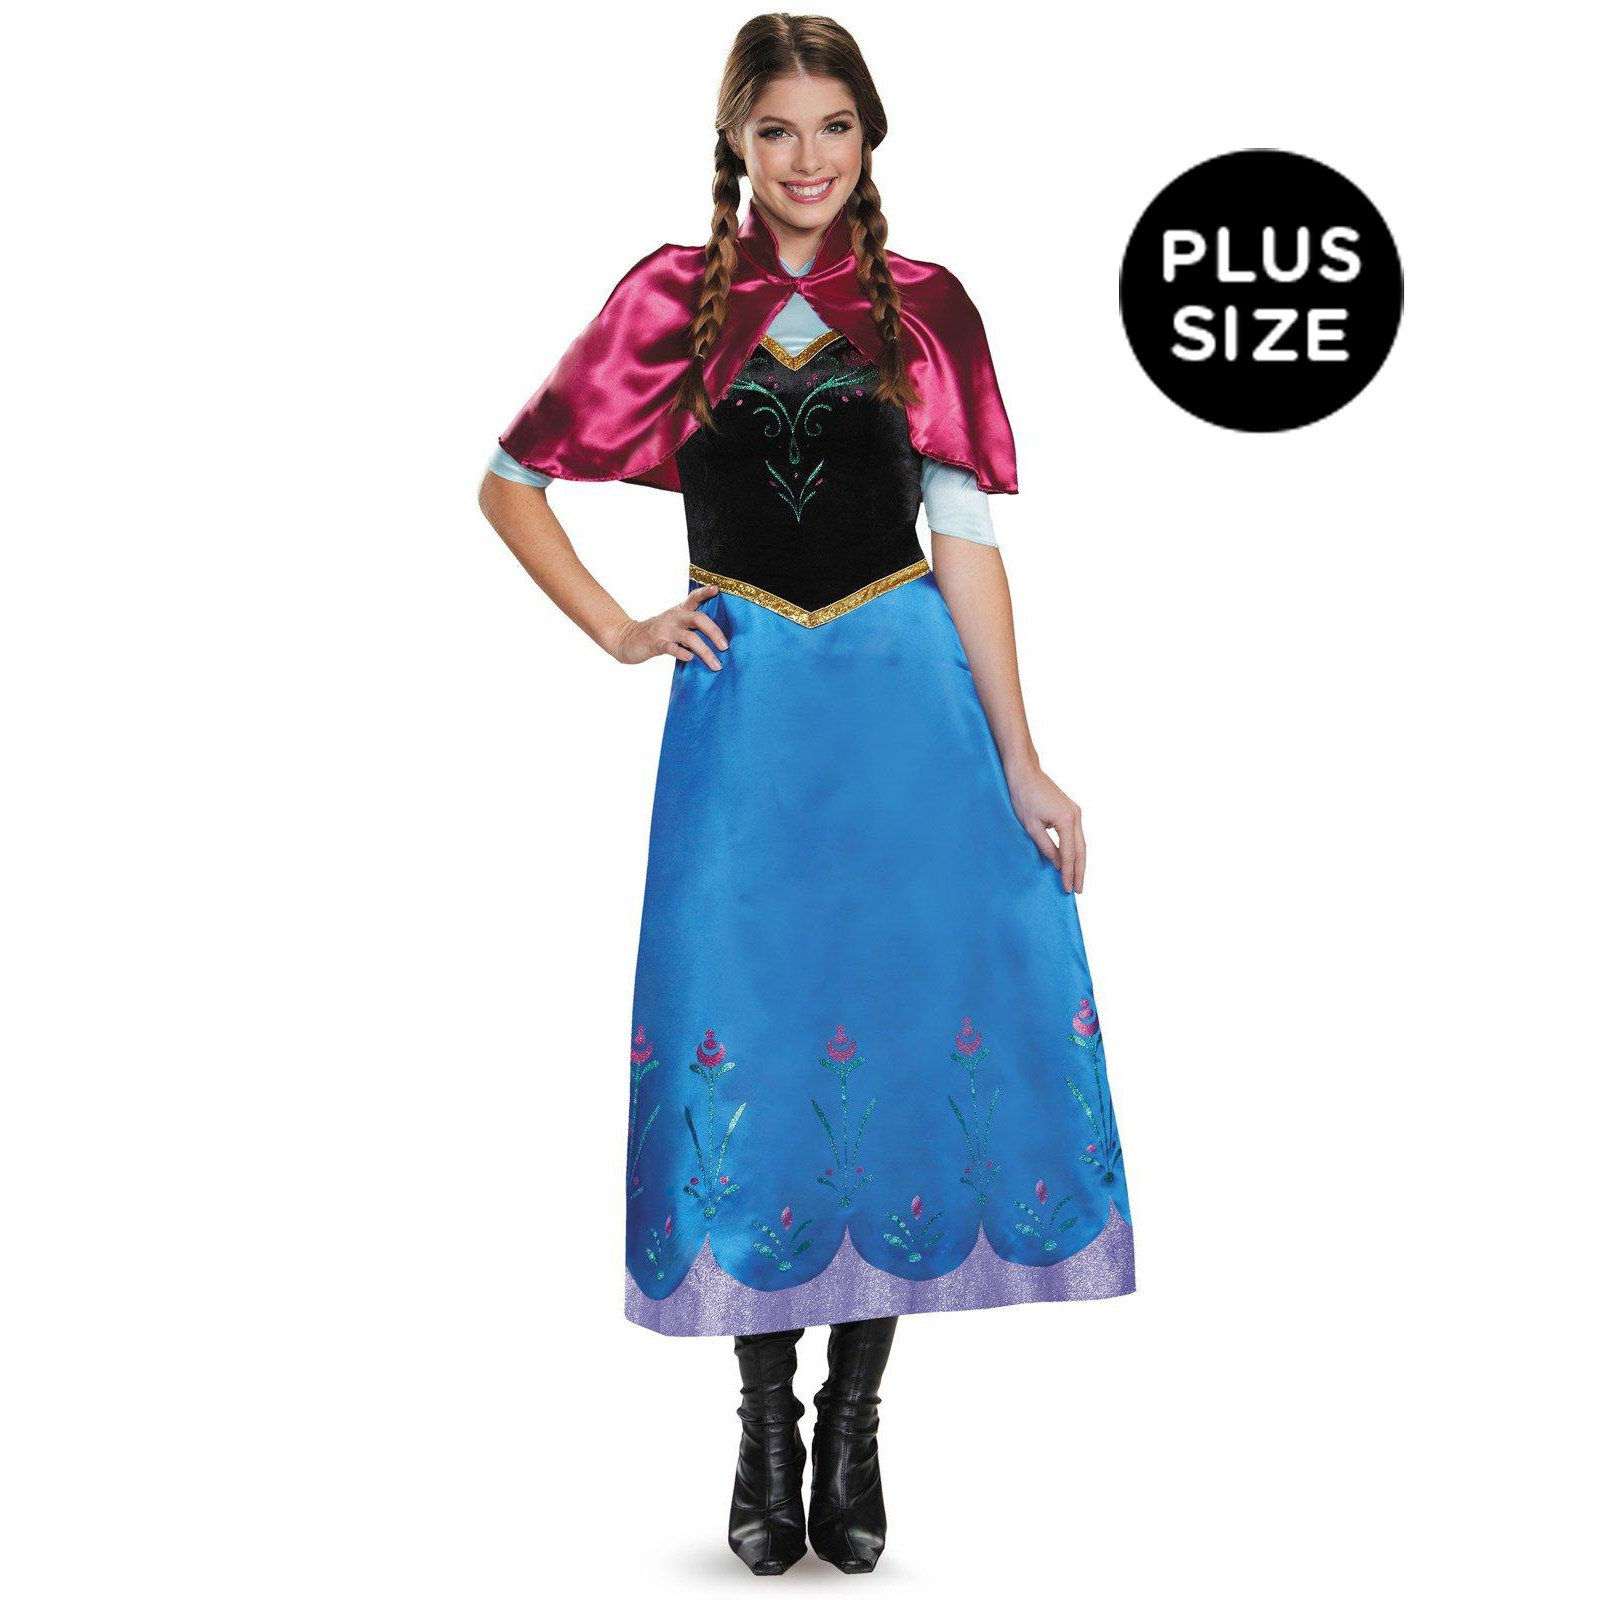 Frozen: Womens Plus Size Deluxe Anna Traveling Gown Costume